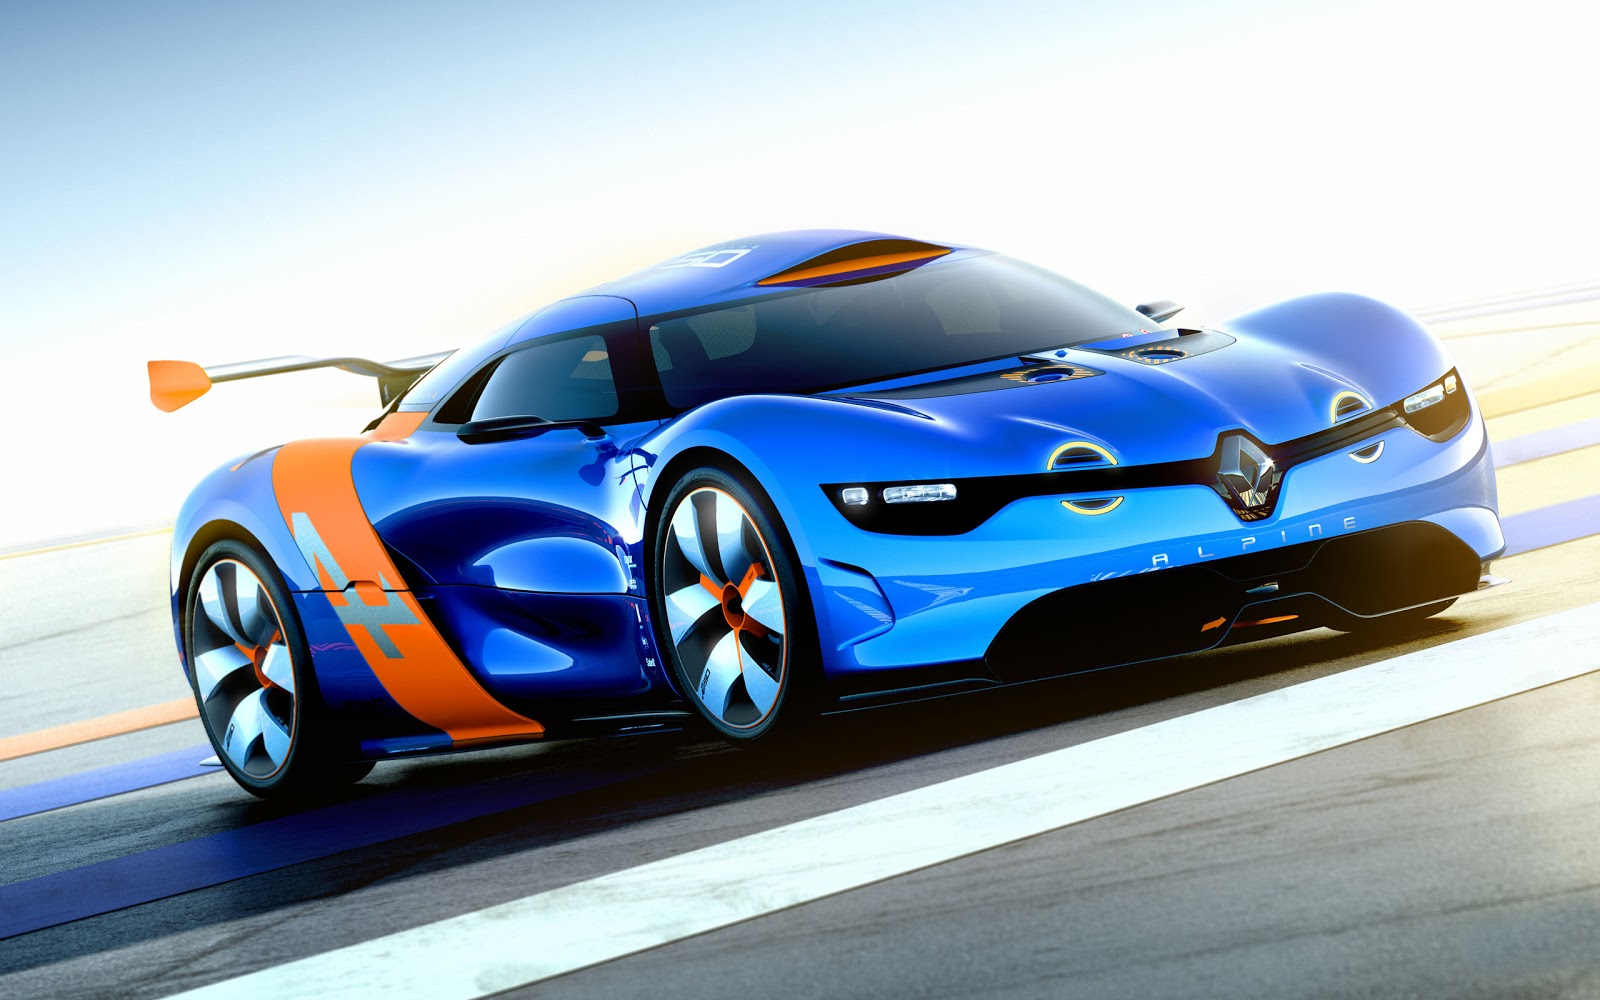 Best beautiful wallpaper sport cars high resolution hd - Sports car pictures download ...